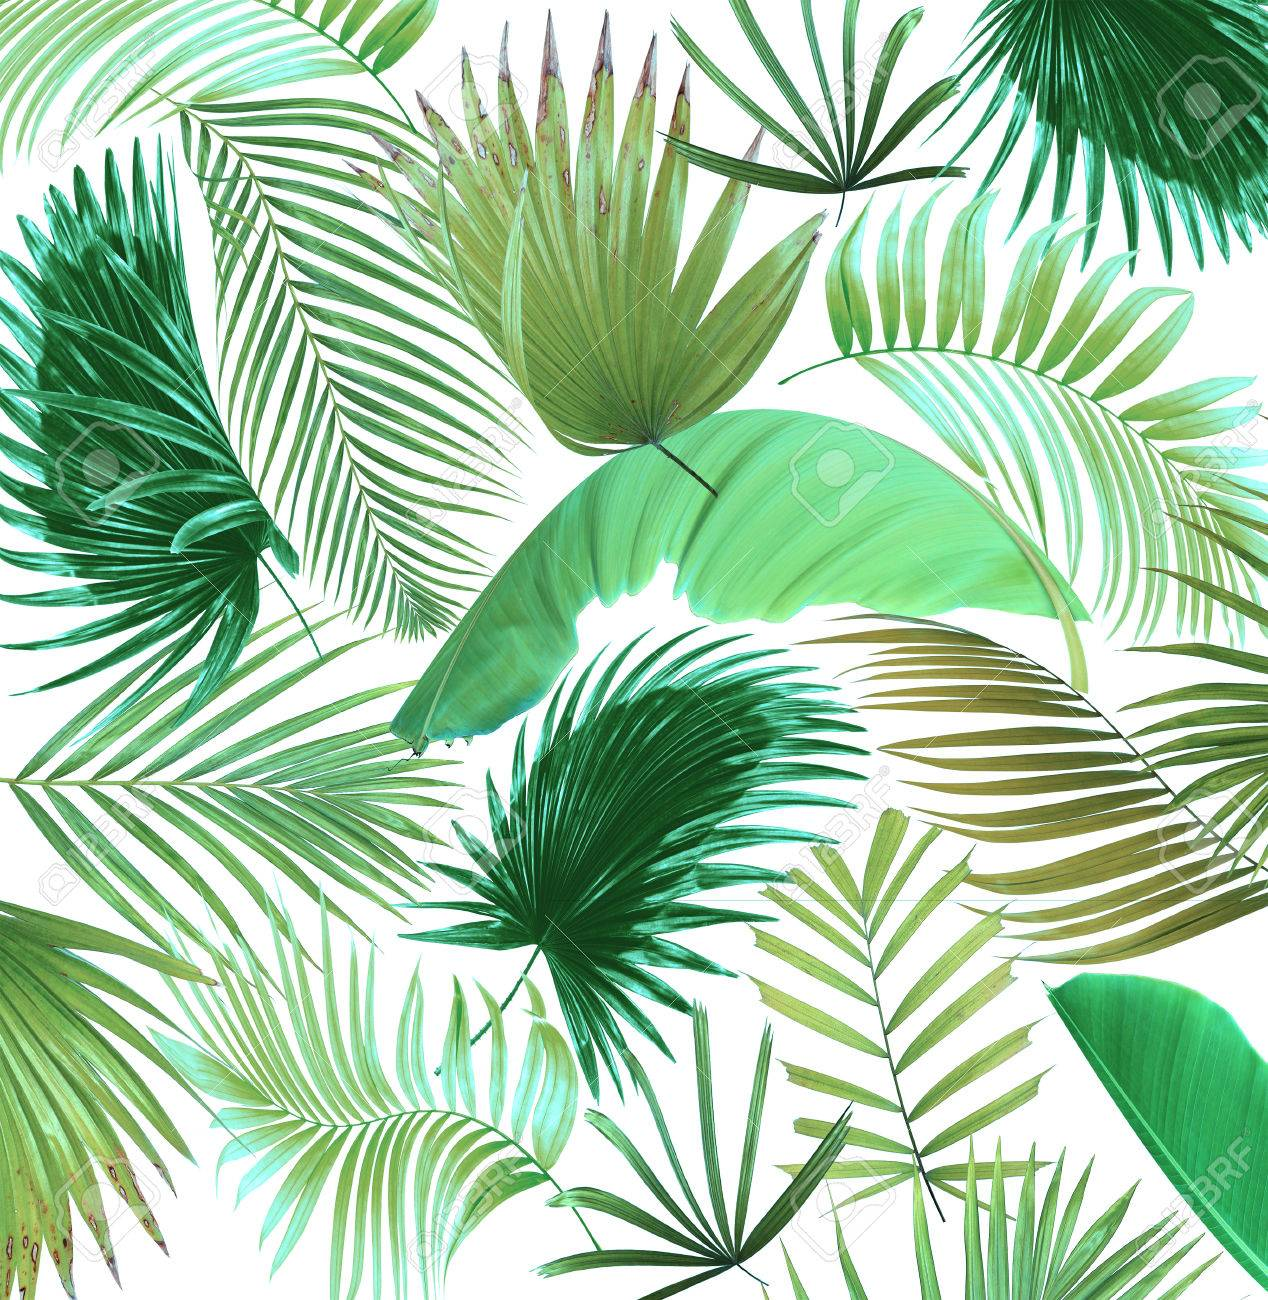 Mix Palm Leaf Tree Background Stock Photo Picture And Royalty Free Image Image 64474630